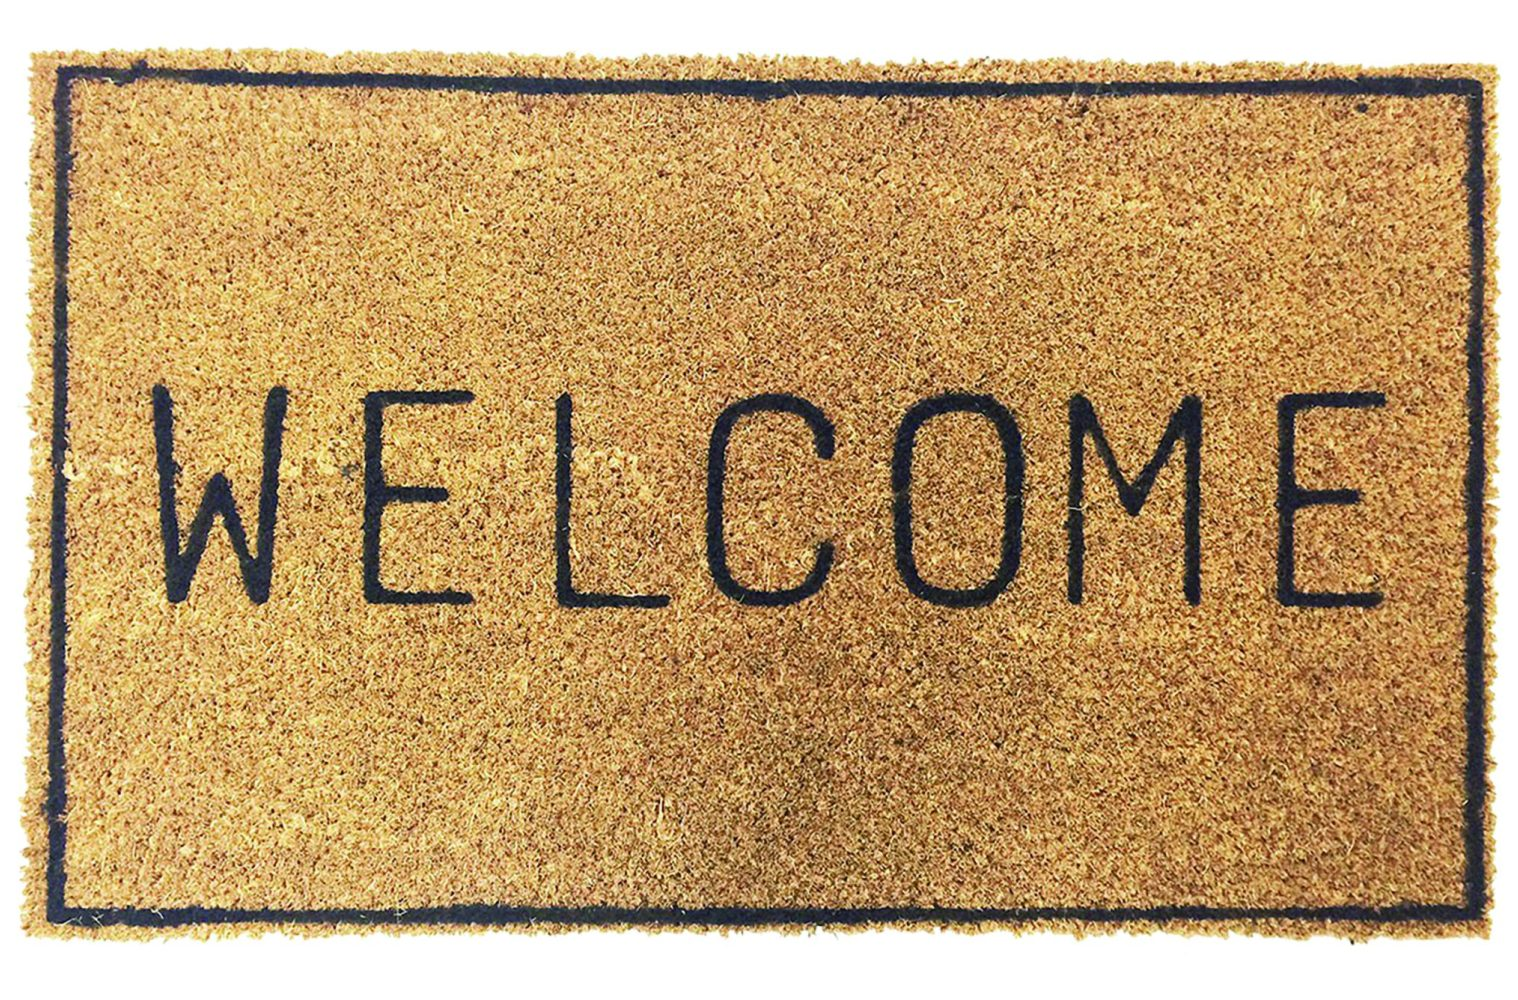 6 Secrets to Helping New Hires Feel Welcome